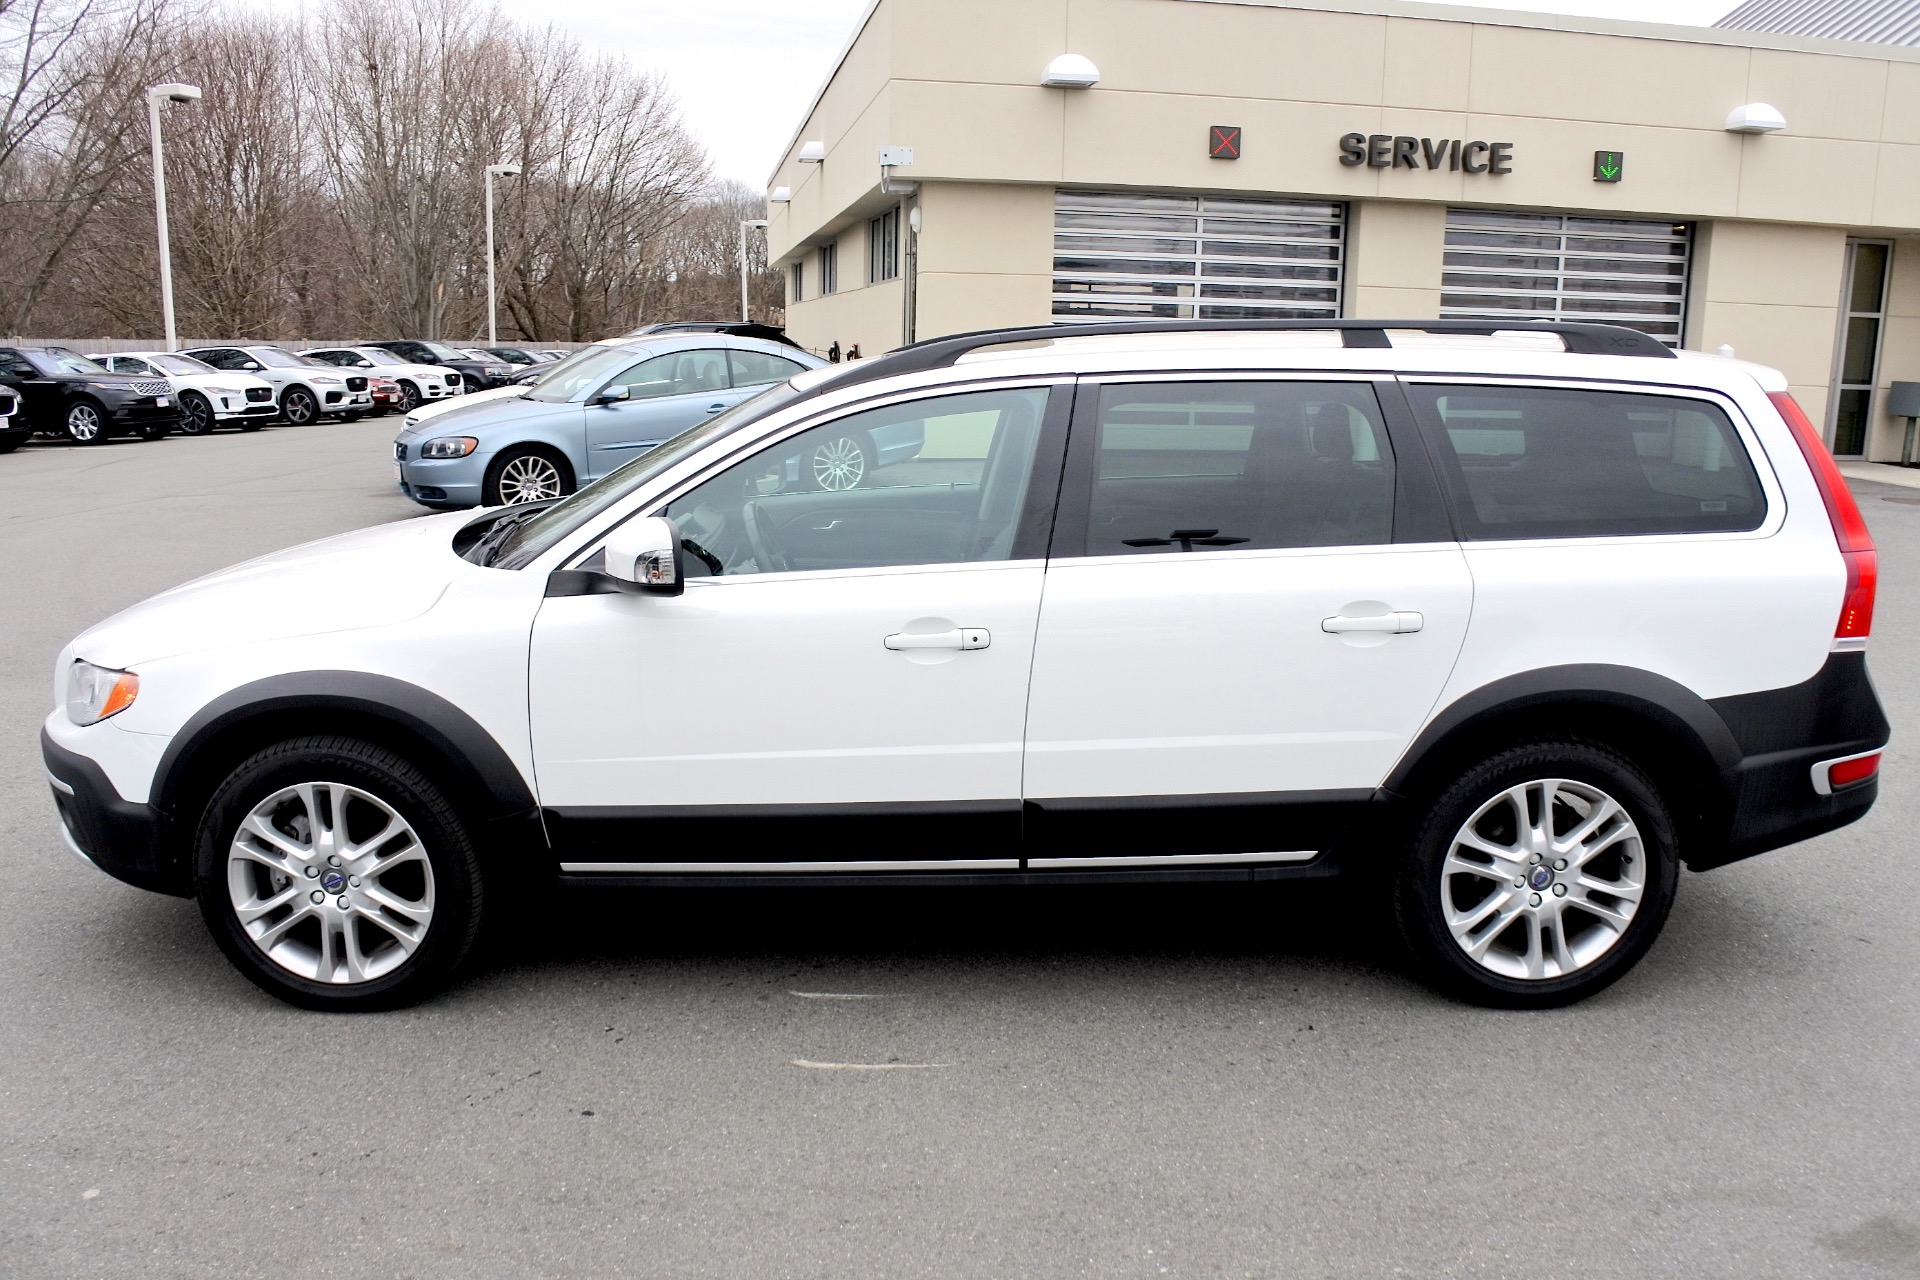 Used 2016 Volvo Xc70 T5 Premier AWD Used 2016 Volvo Xc70 T5 Premier AWD for sale  at Metro West Motorcars LLC in Shrewsbury MA 2